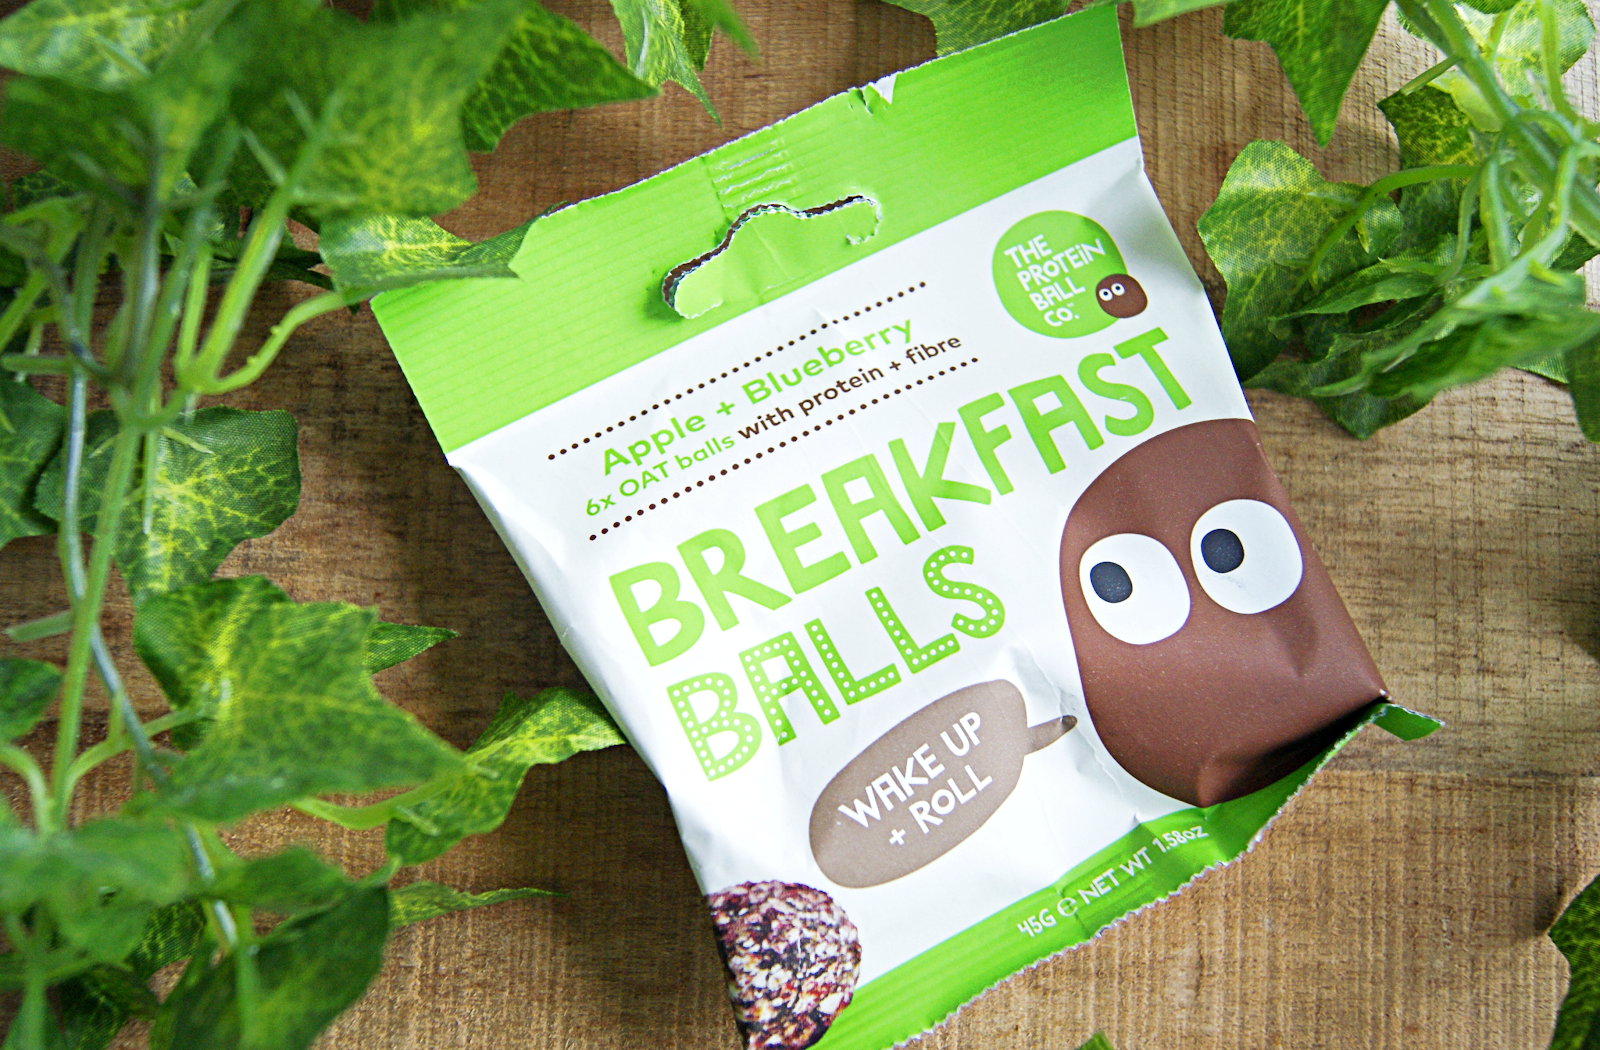 Ralph moorman favourits jouwbox editie 5 unboxing the protein ball co